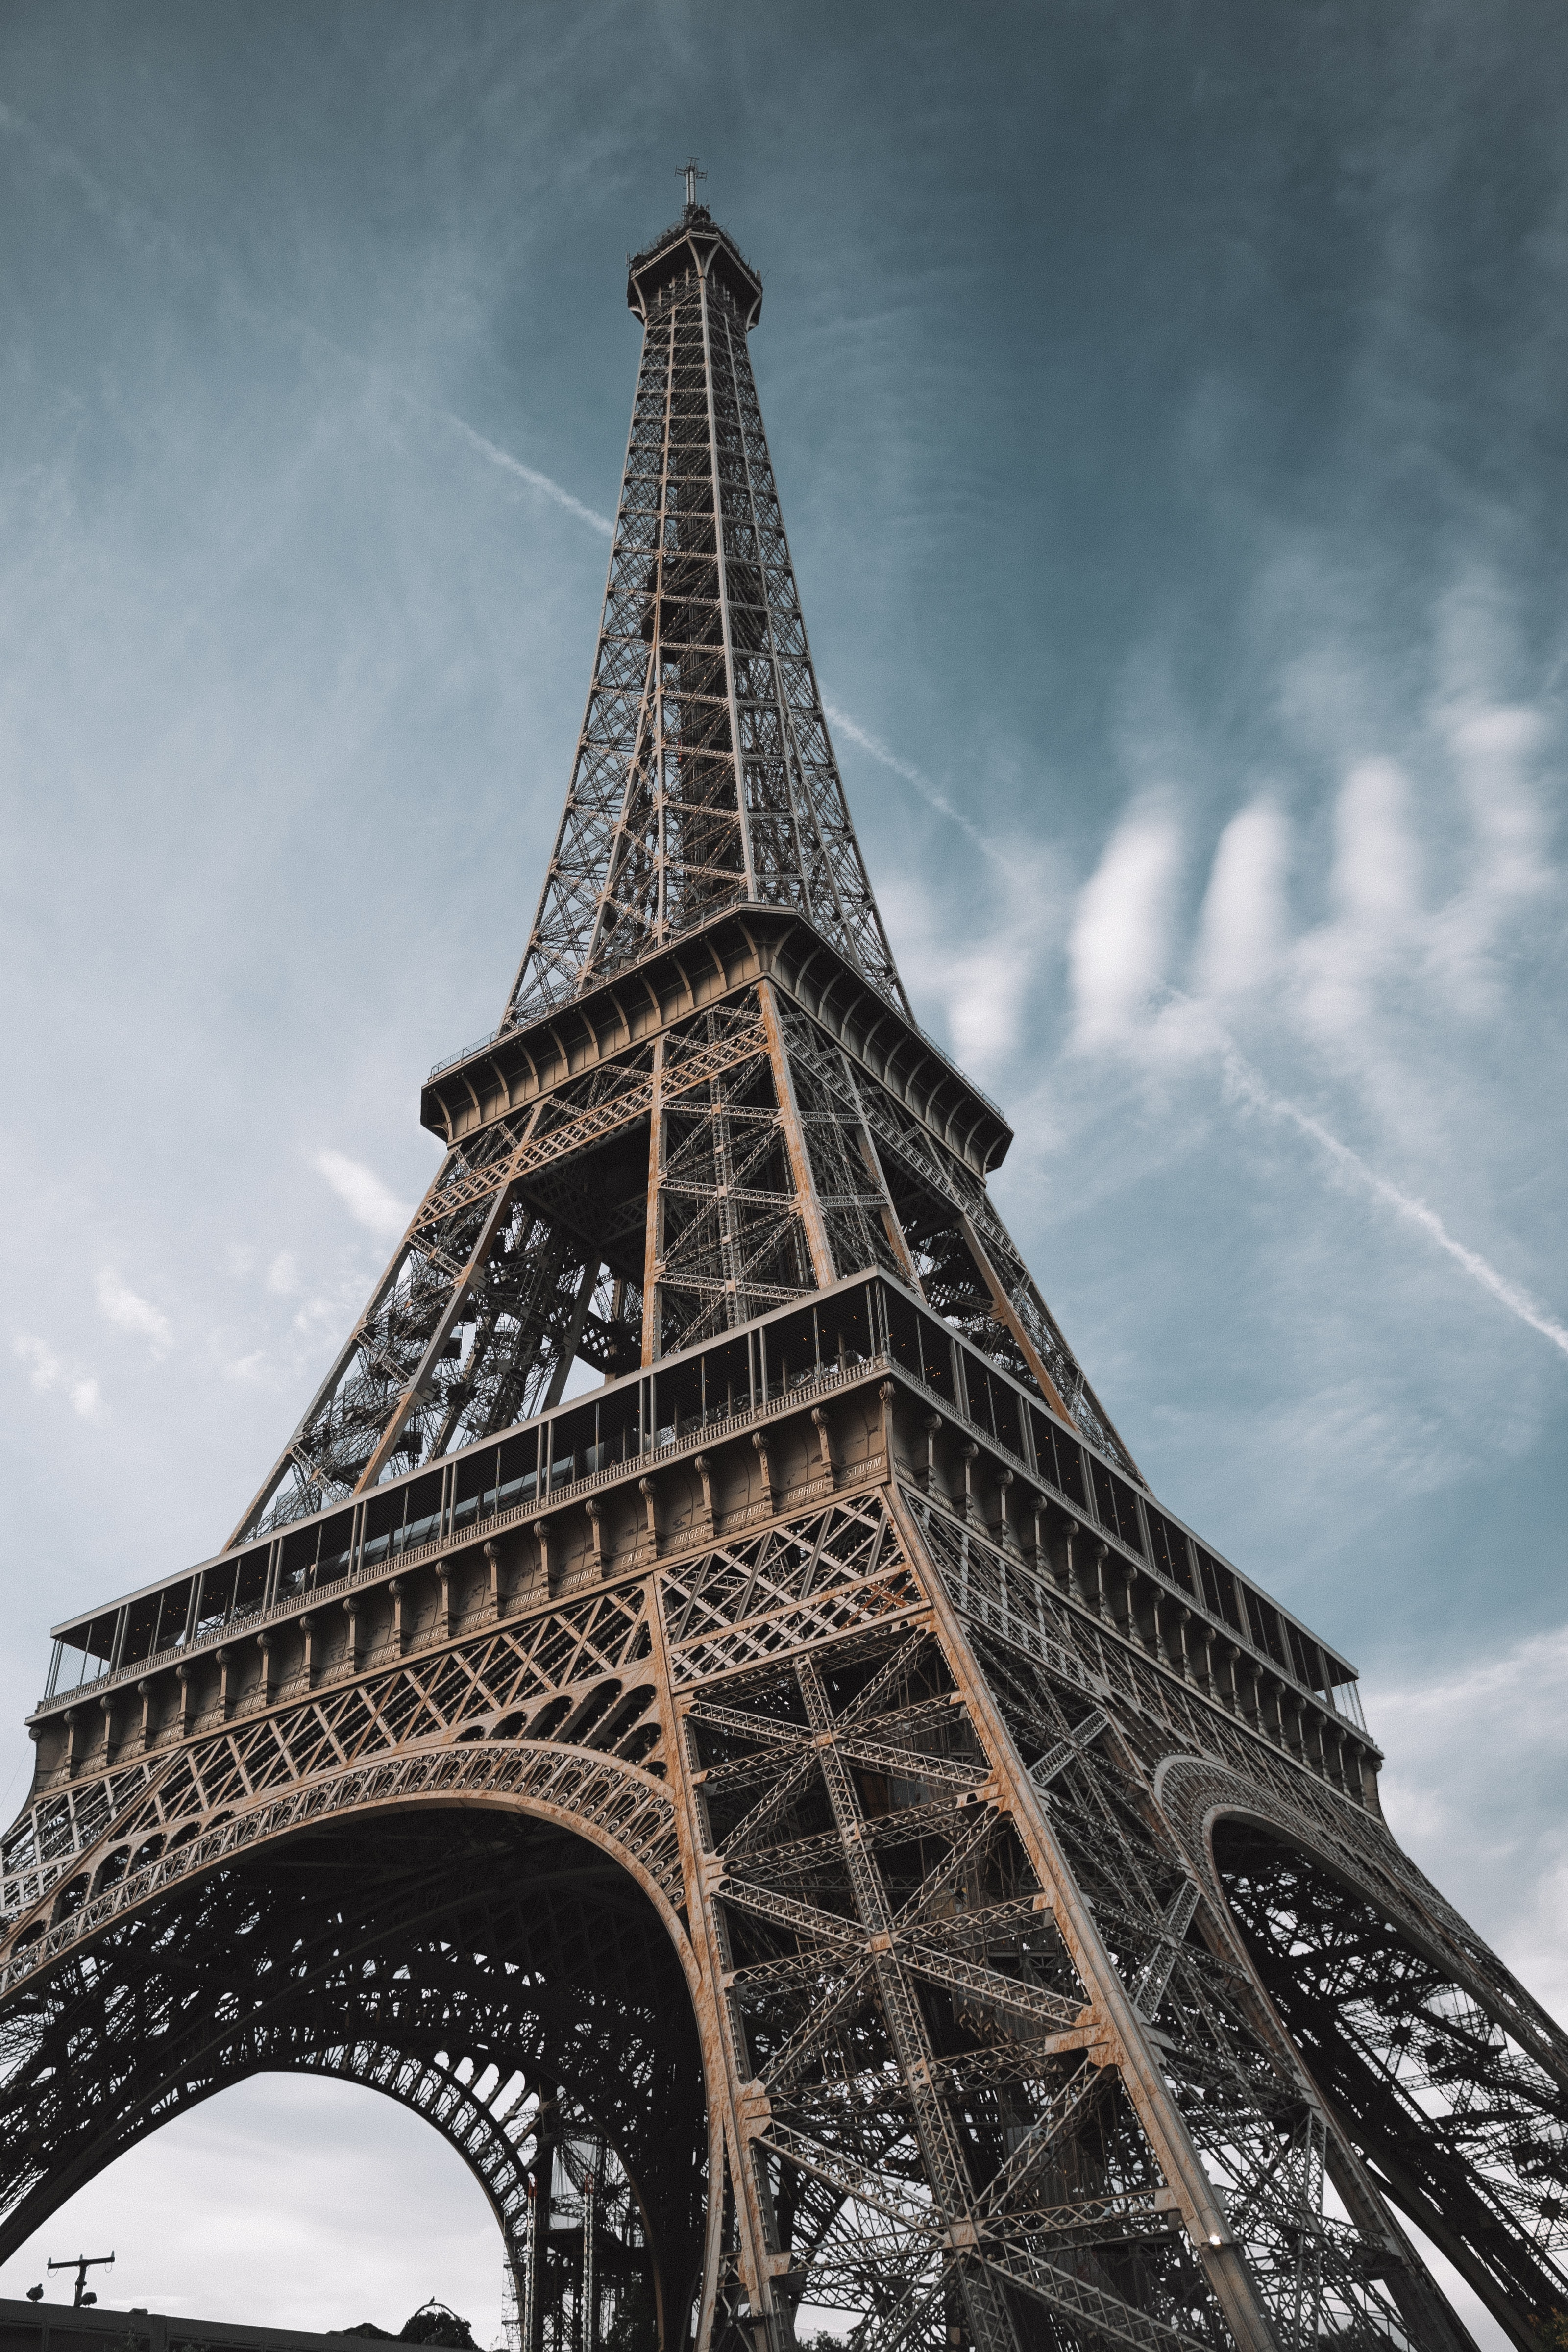 Vehicles Near Road Viewing Eiffel Tower Photo Free Automobile Image On Unsplash